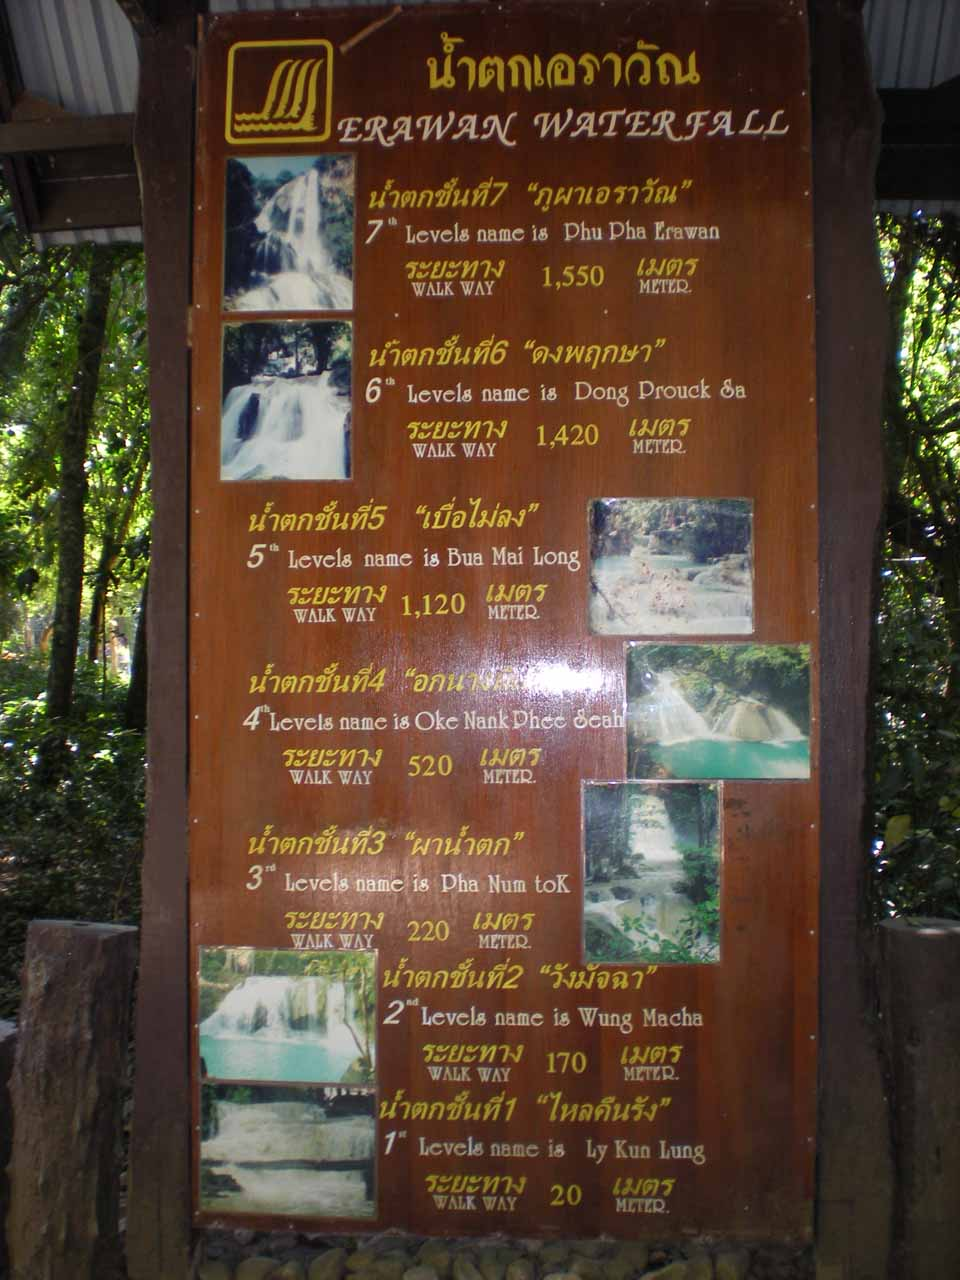 Here was a sign showing us what all seven tiers of the Erawan Waterfalls looked like